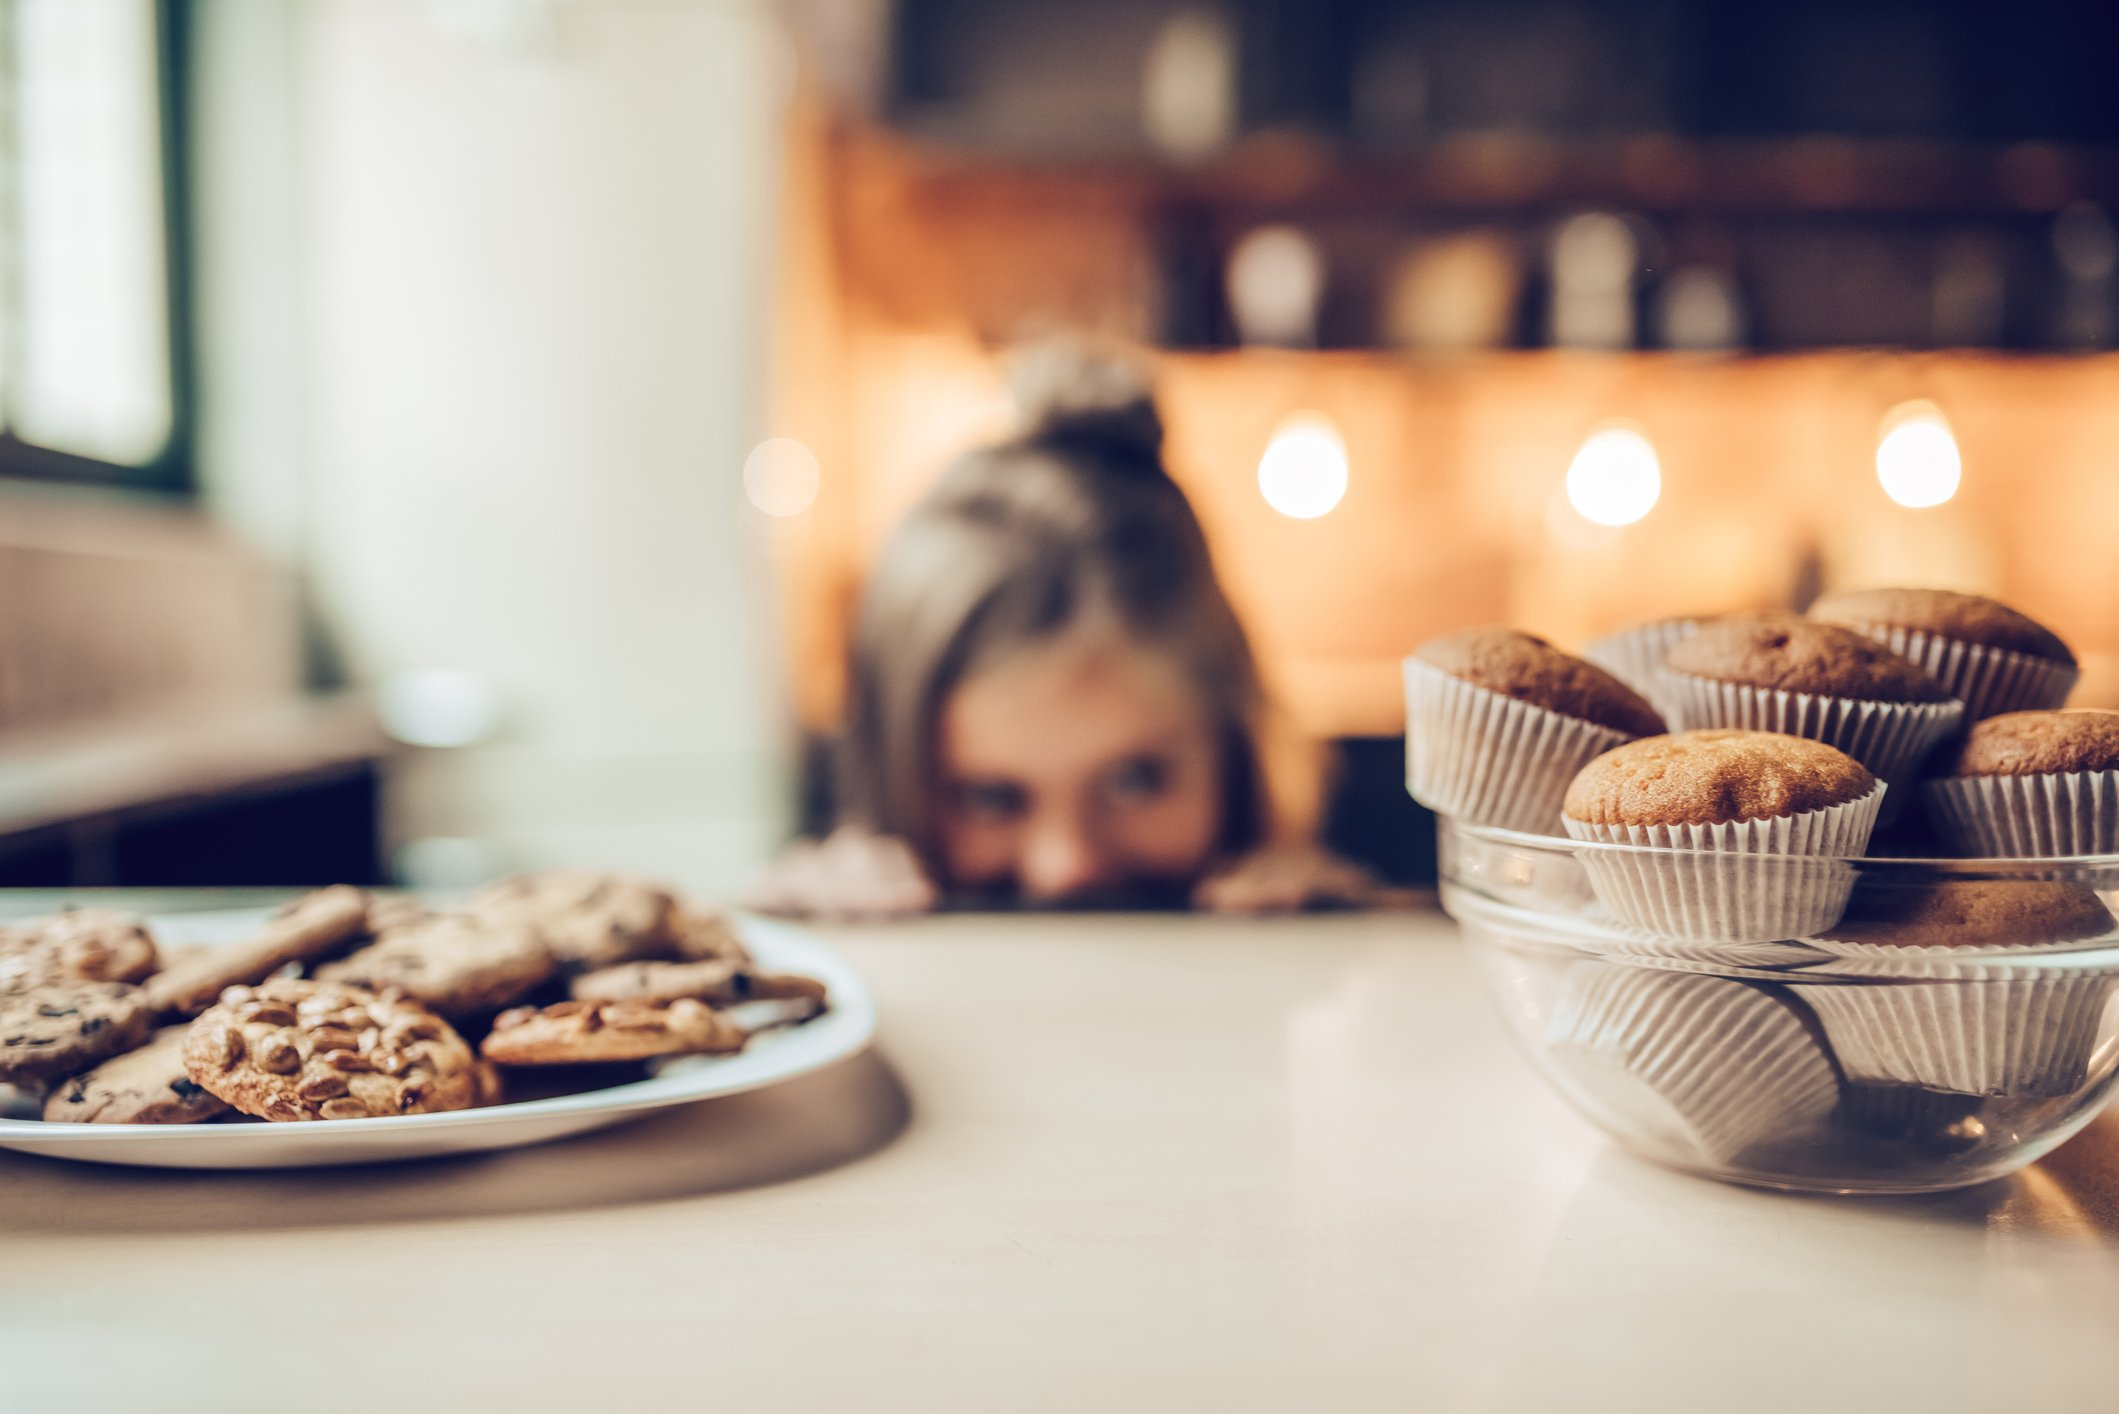 When it comes to food, you should be asking yourself this: Are you truly craving what you are eating? (iStock Photo)